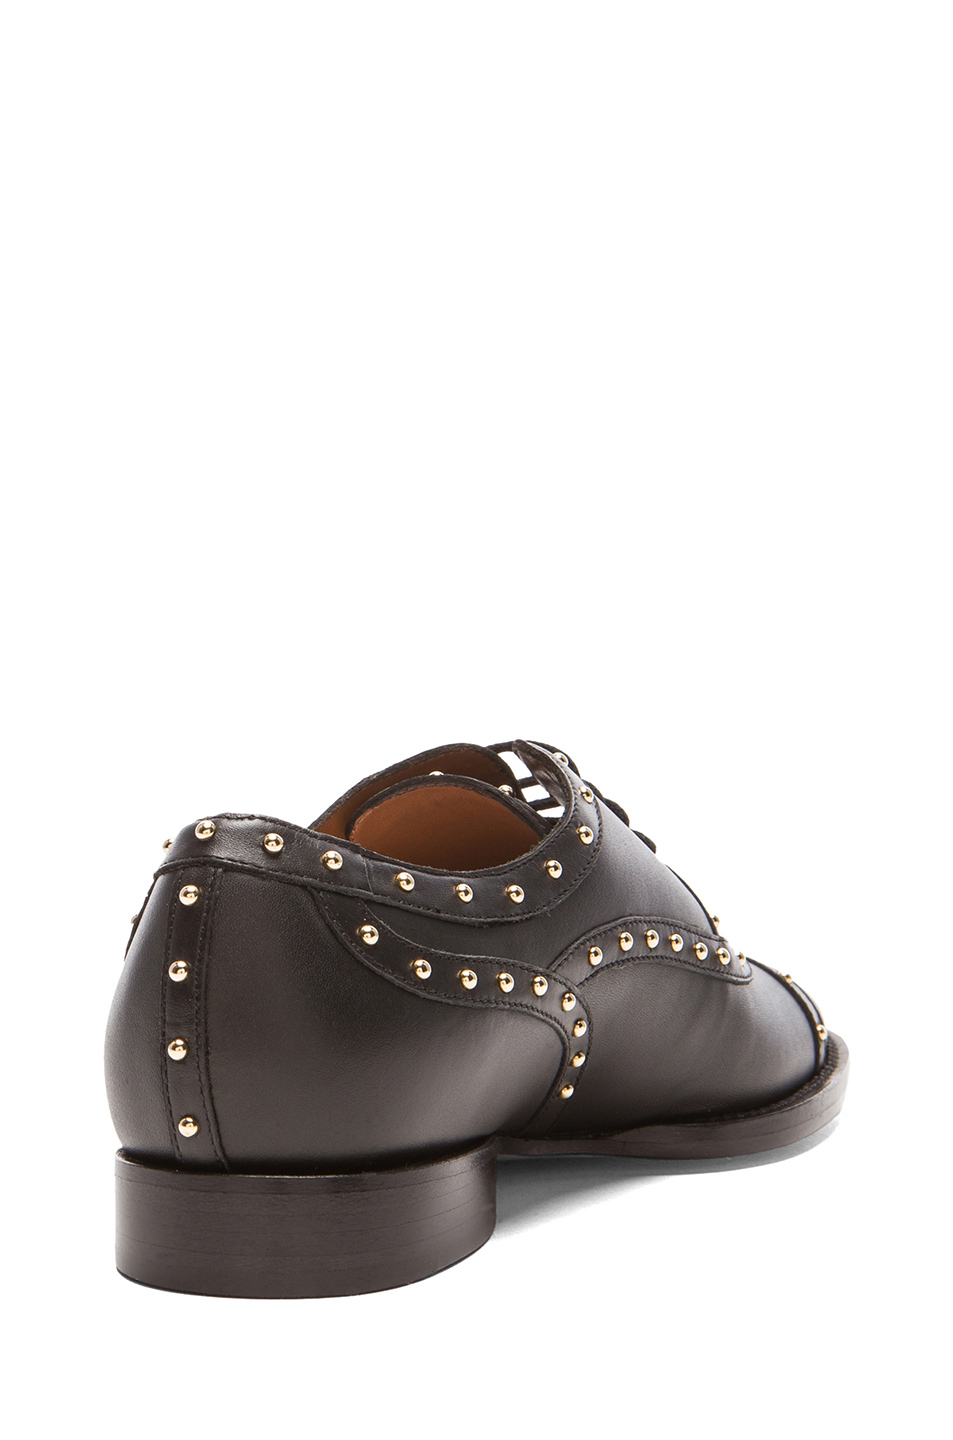 valentino dotcom lace up dress shoes in black black